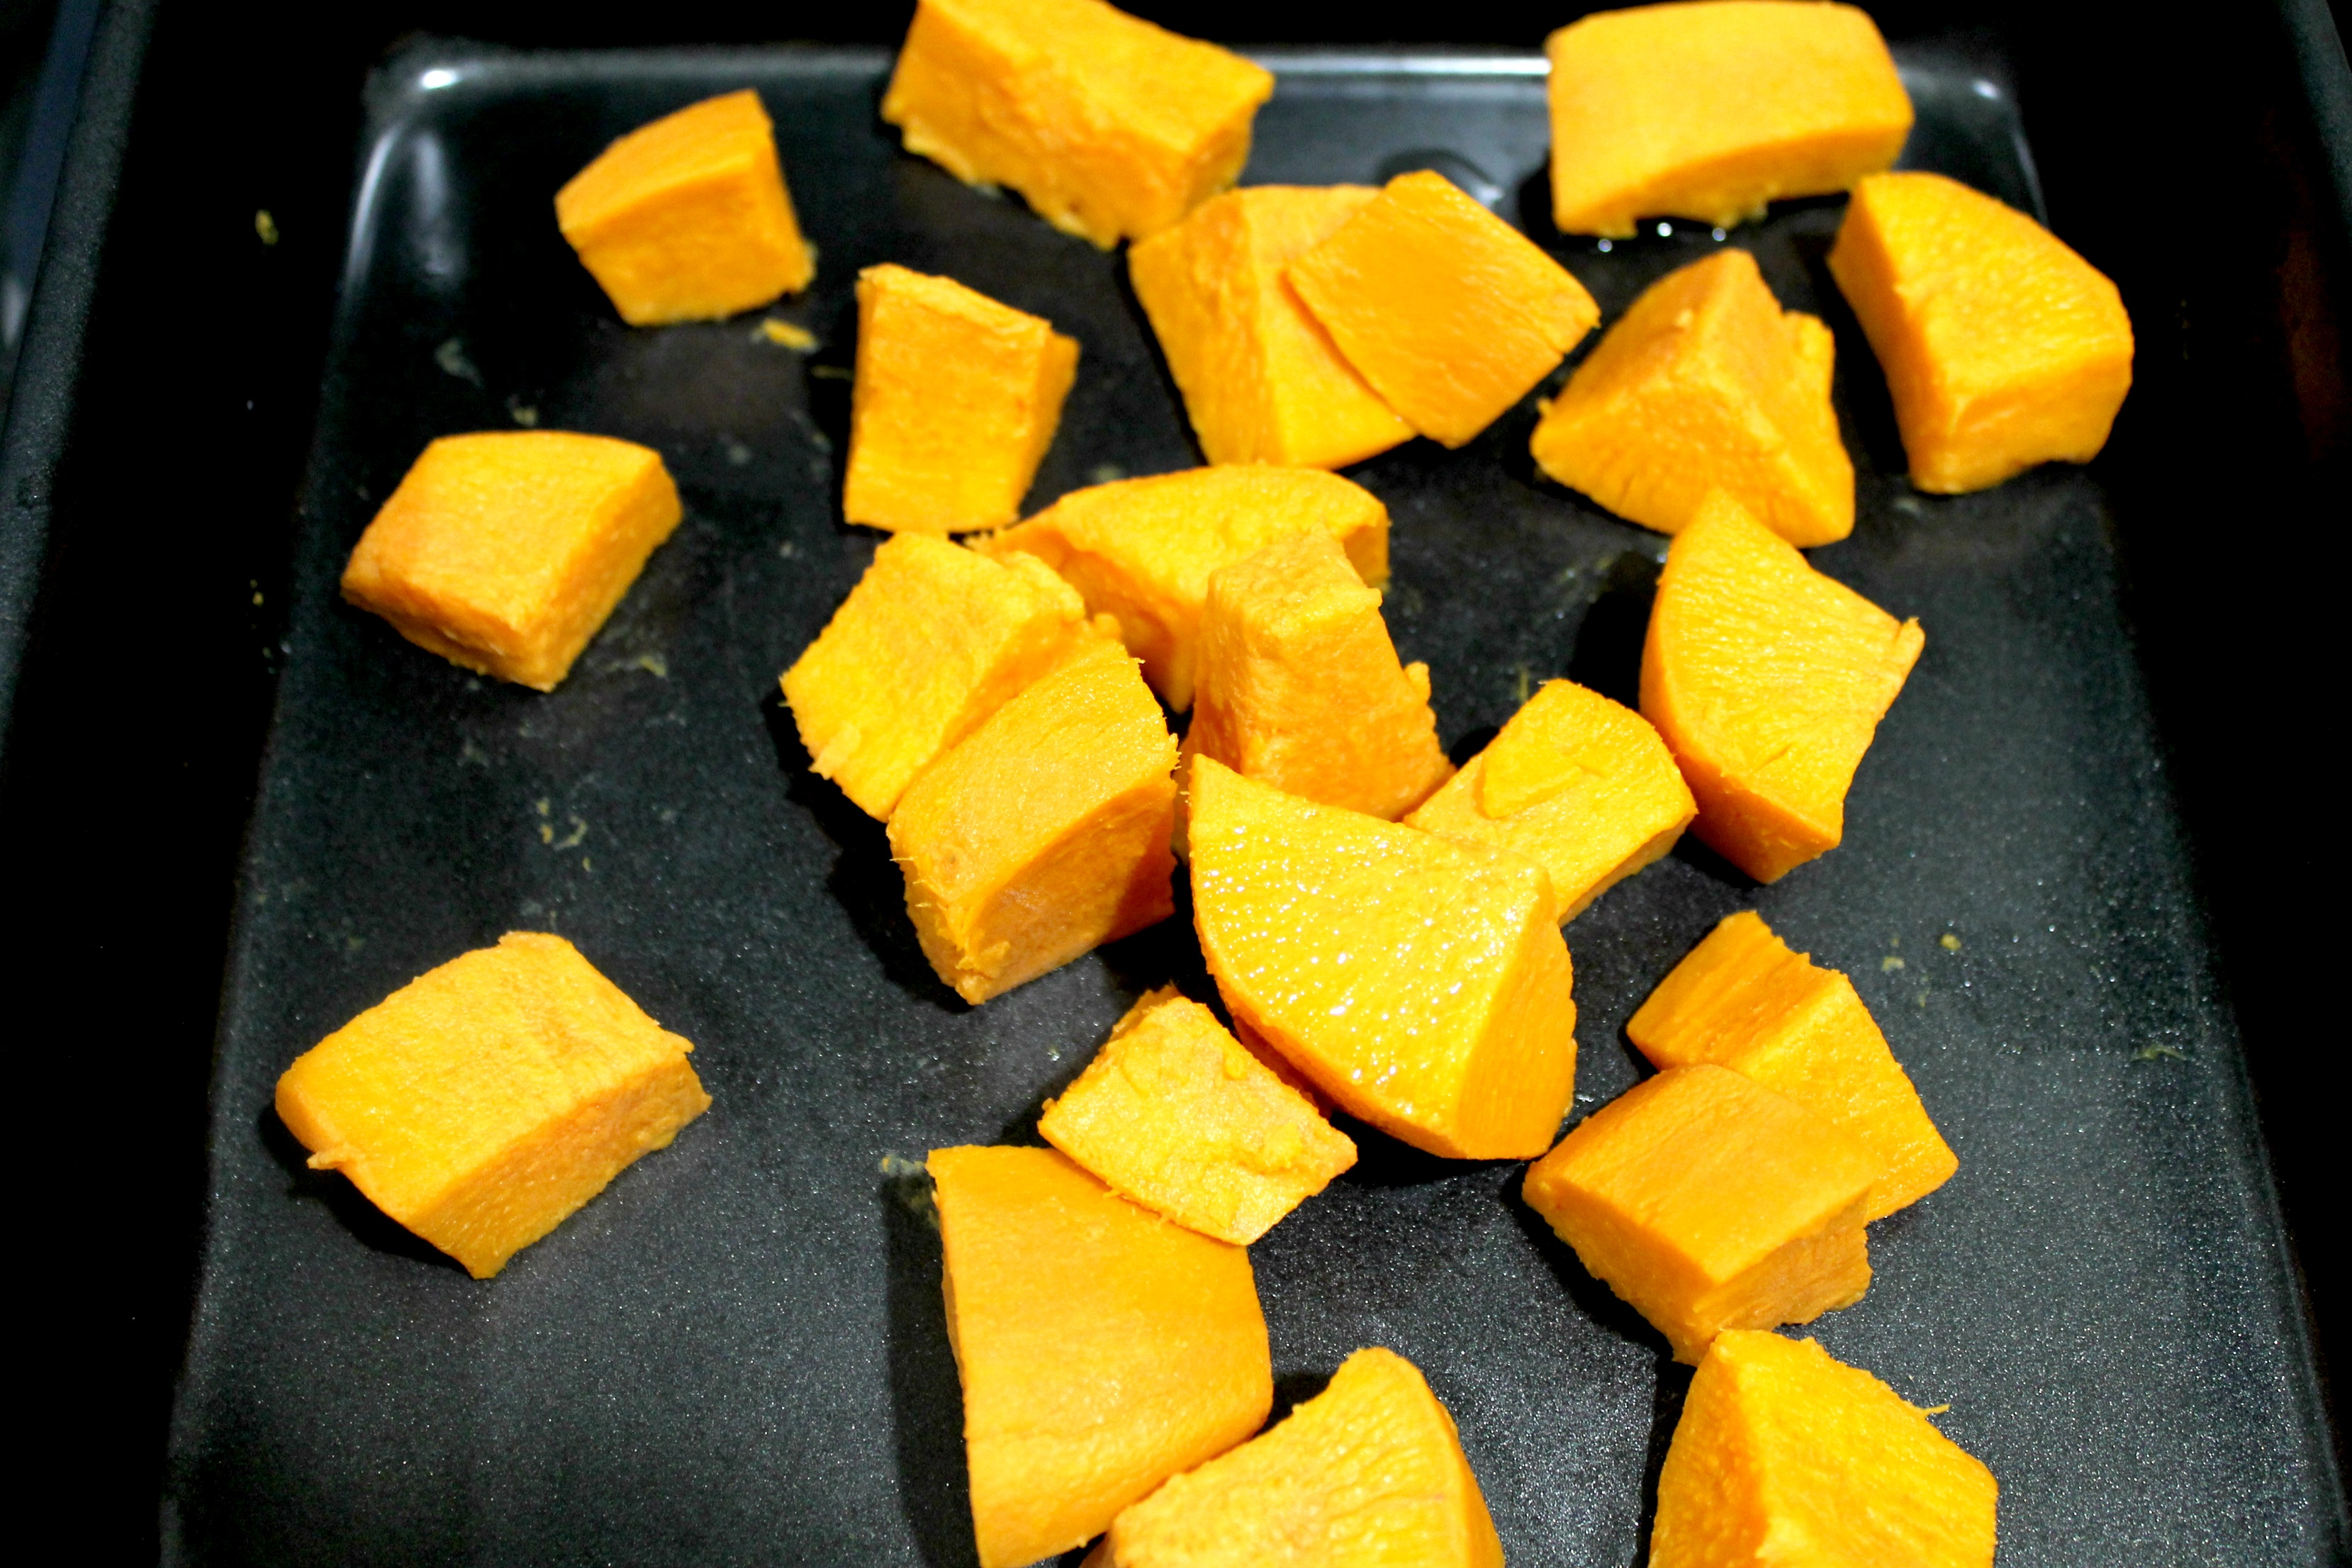 diced sweet potatoes dish